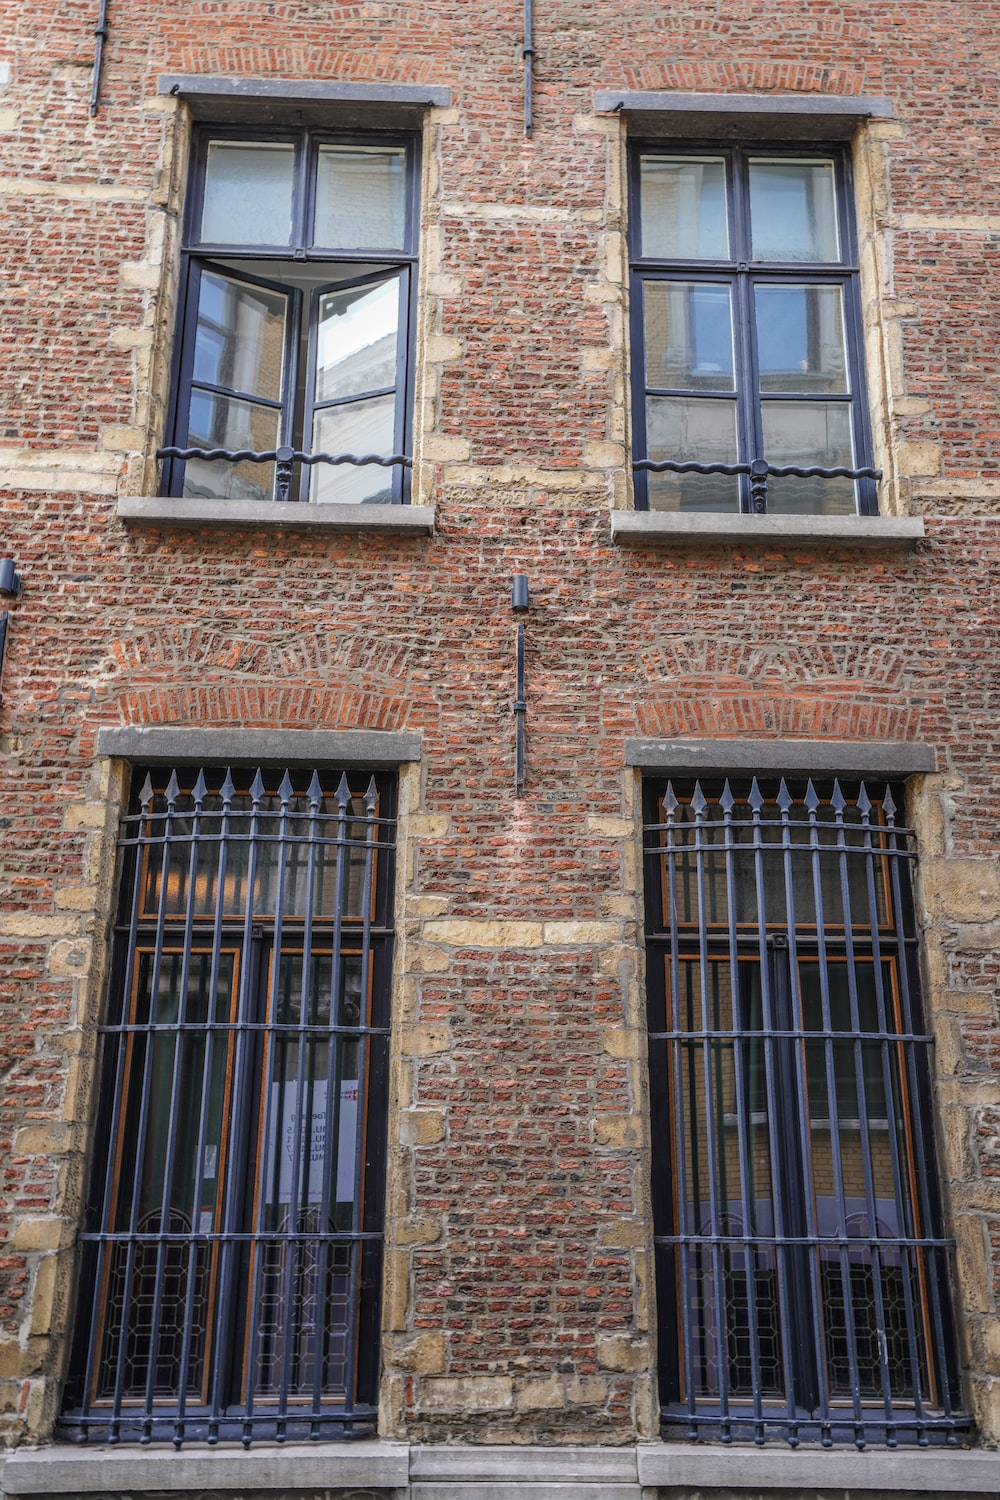 brown brick building with windows